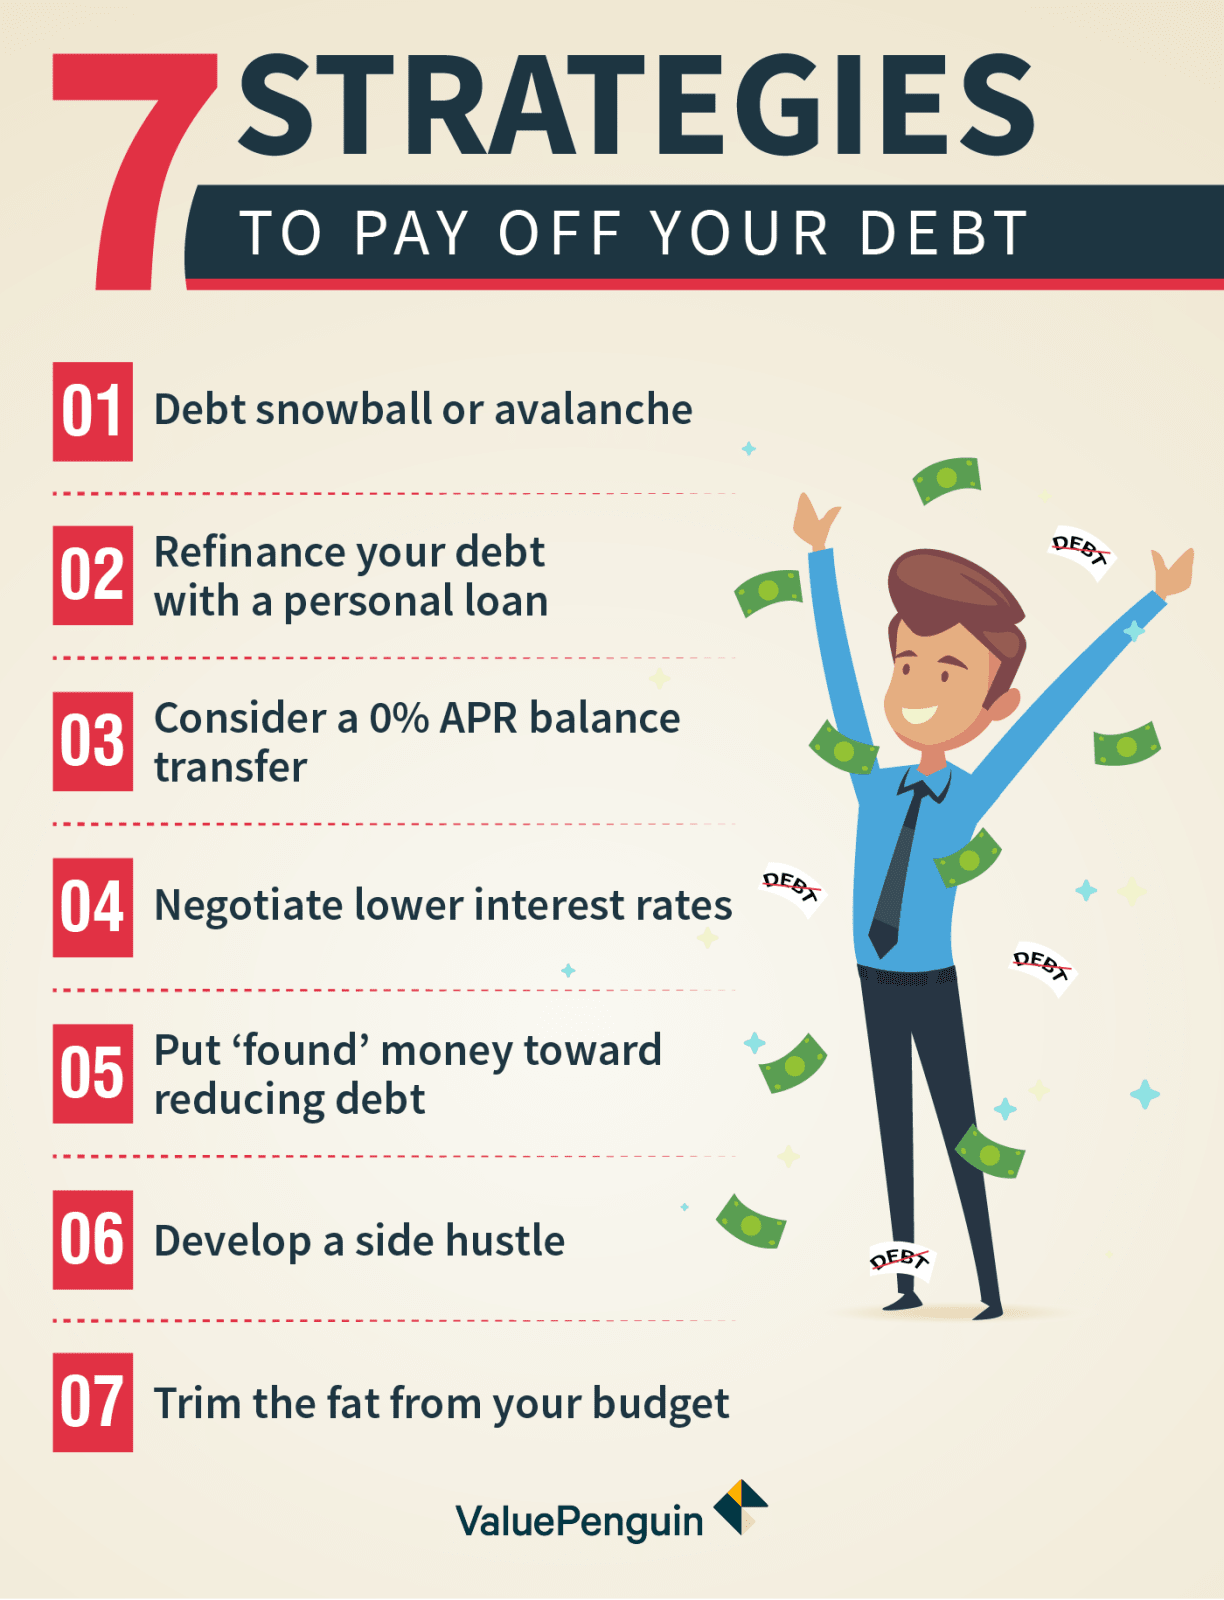 7 Strategies to Pay Off Your Debt